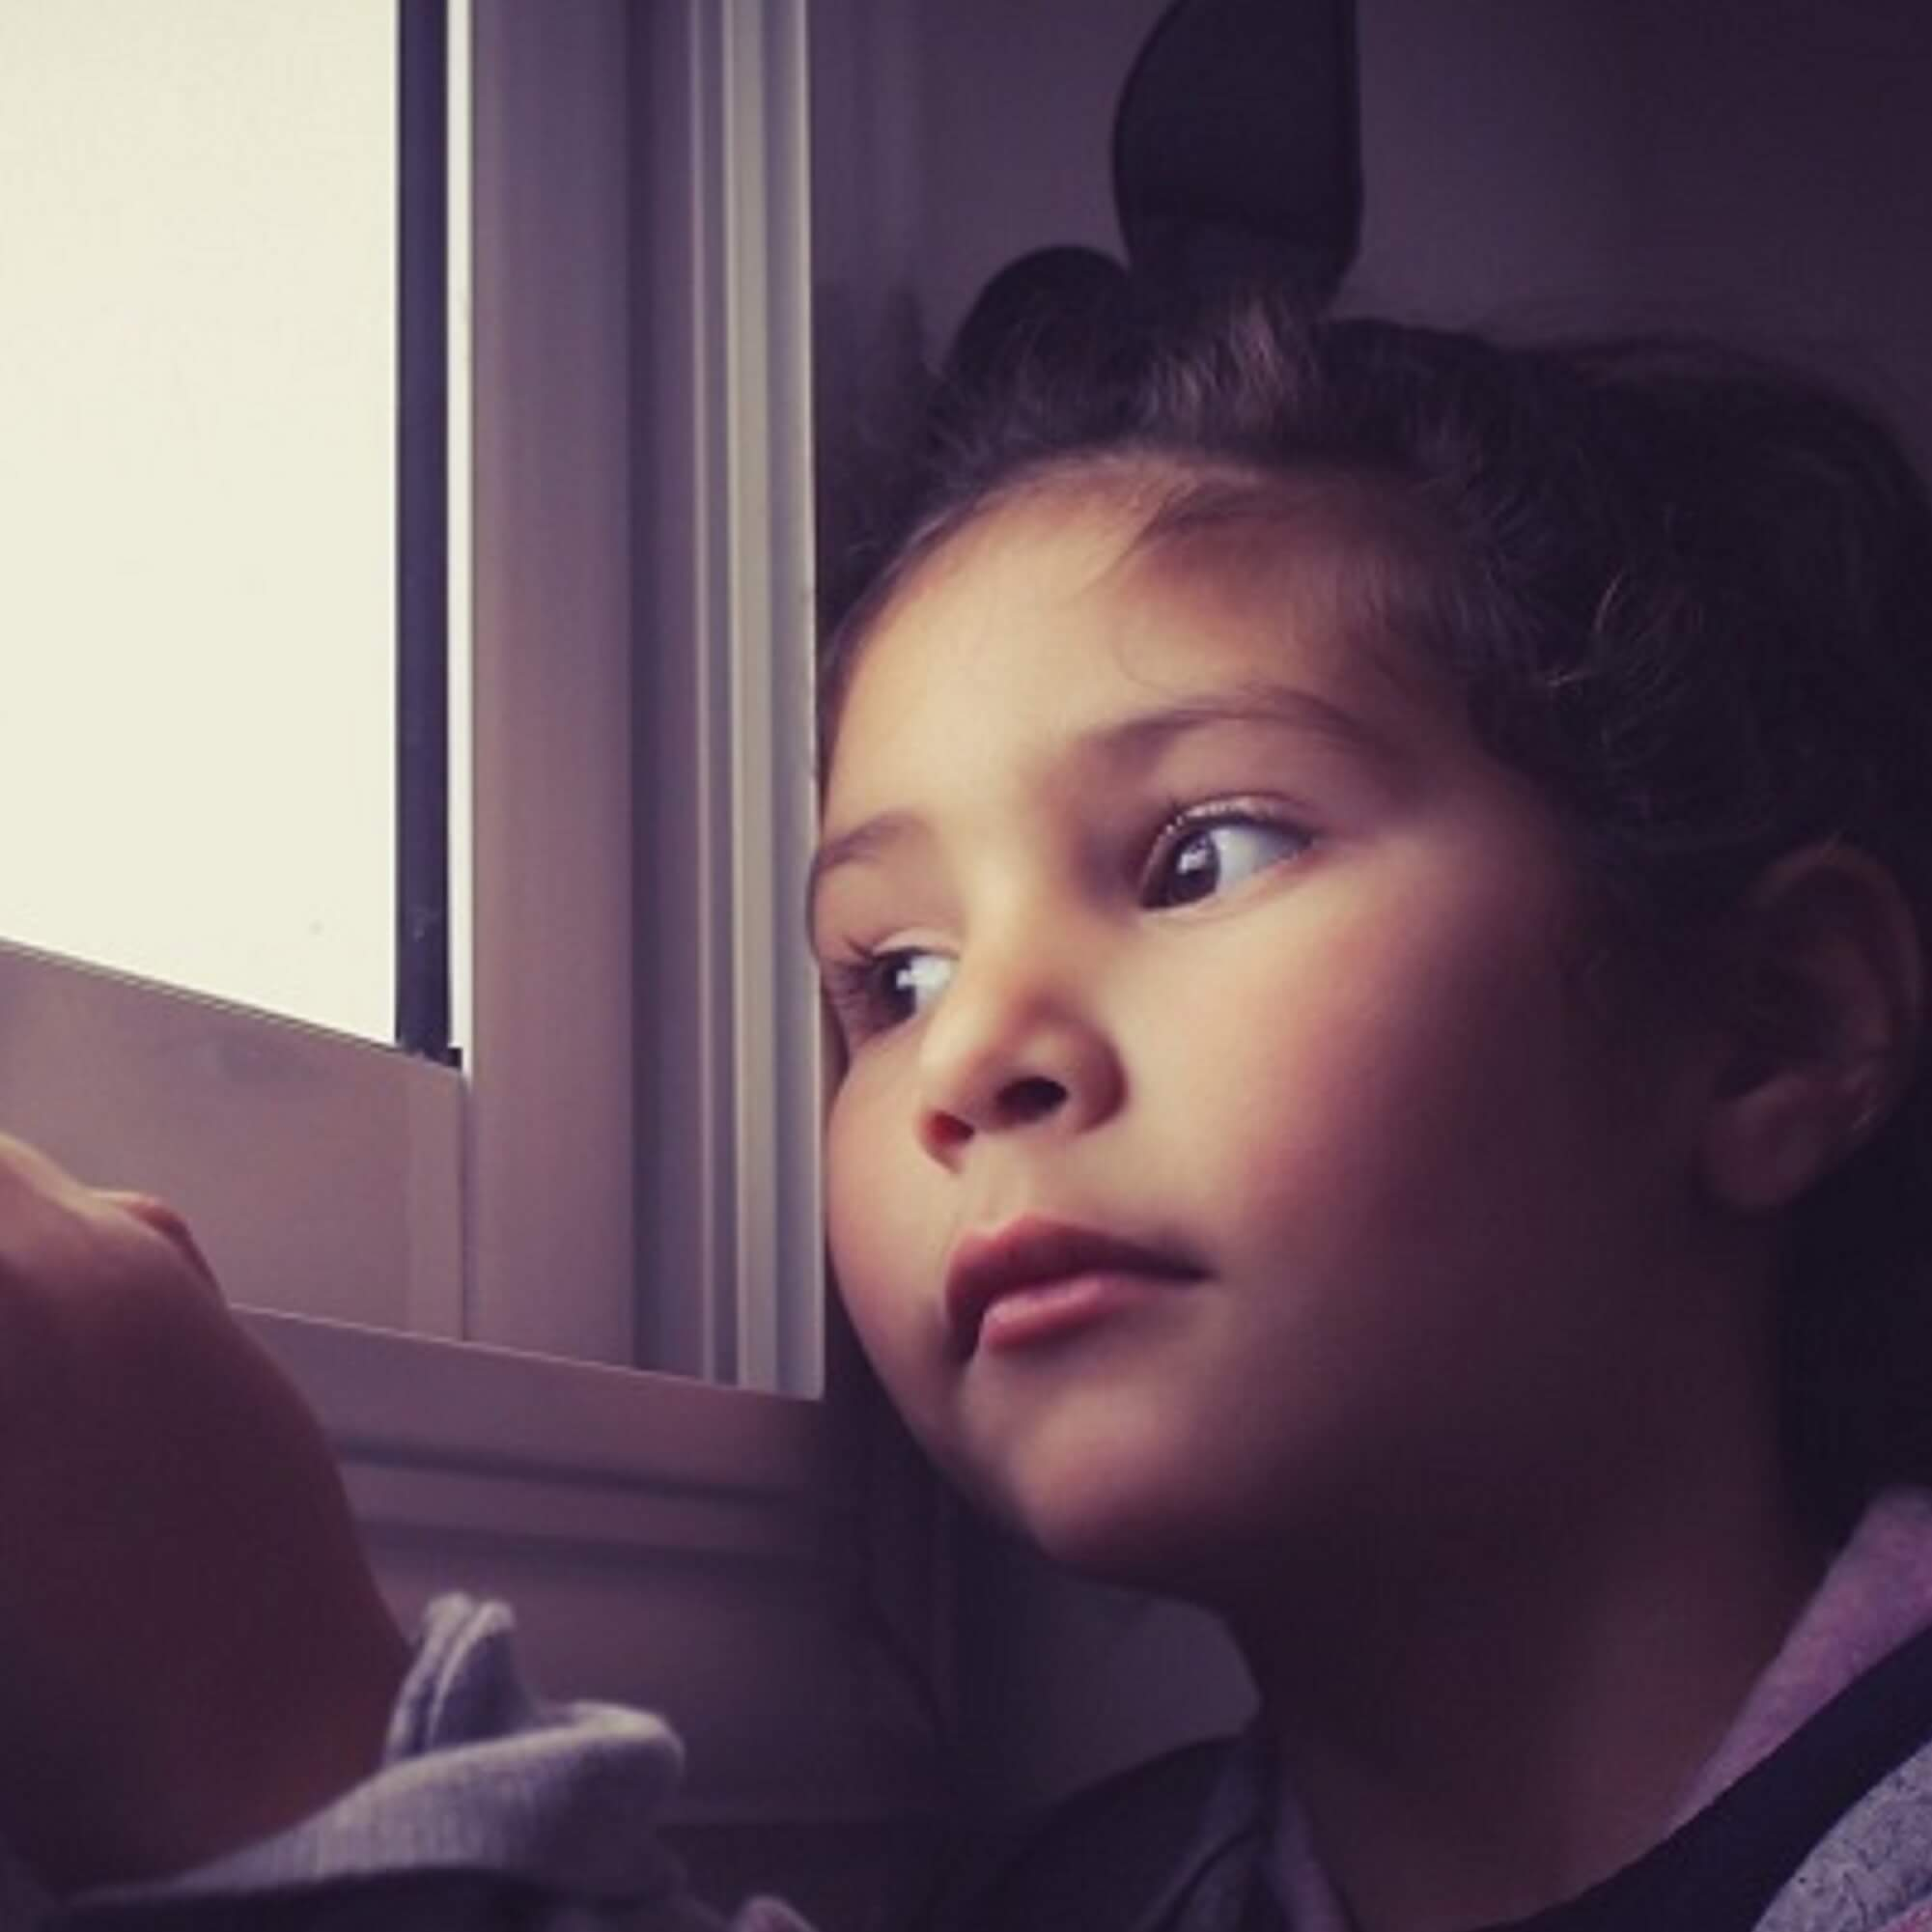 Little girl looking out of a window, worried.